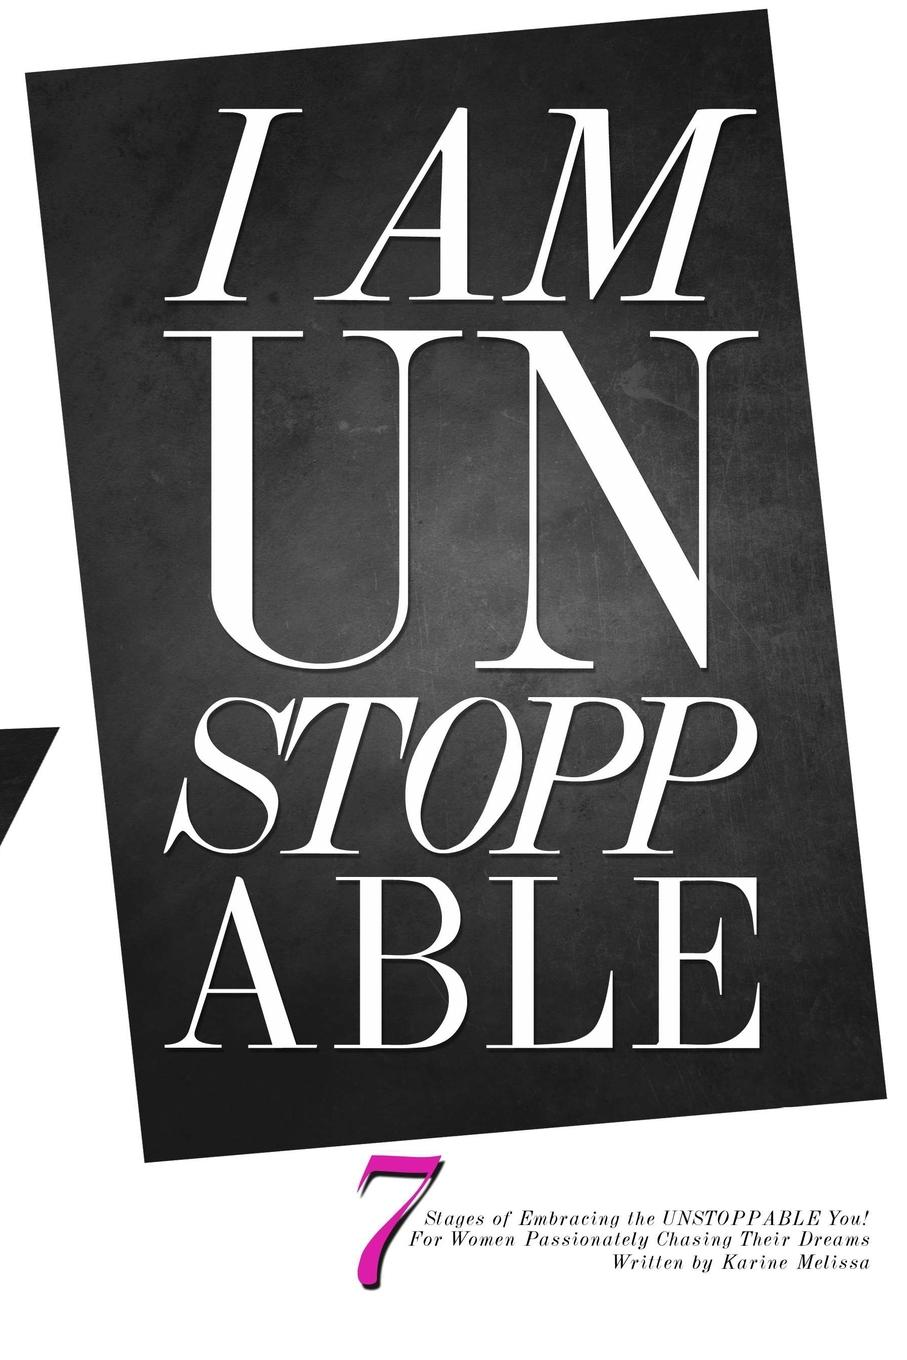 Karine Melissa I Am Unstoppable. 7 Stages of Embracing the Unstoppable You; For Women Passionately Chasing Their Dreams suzanne brockmann unstoppable love with the proper stranger letters to kelly